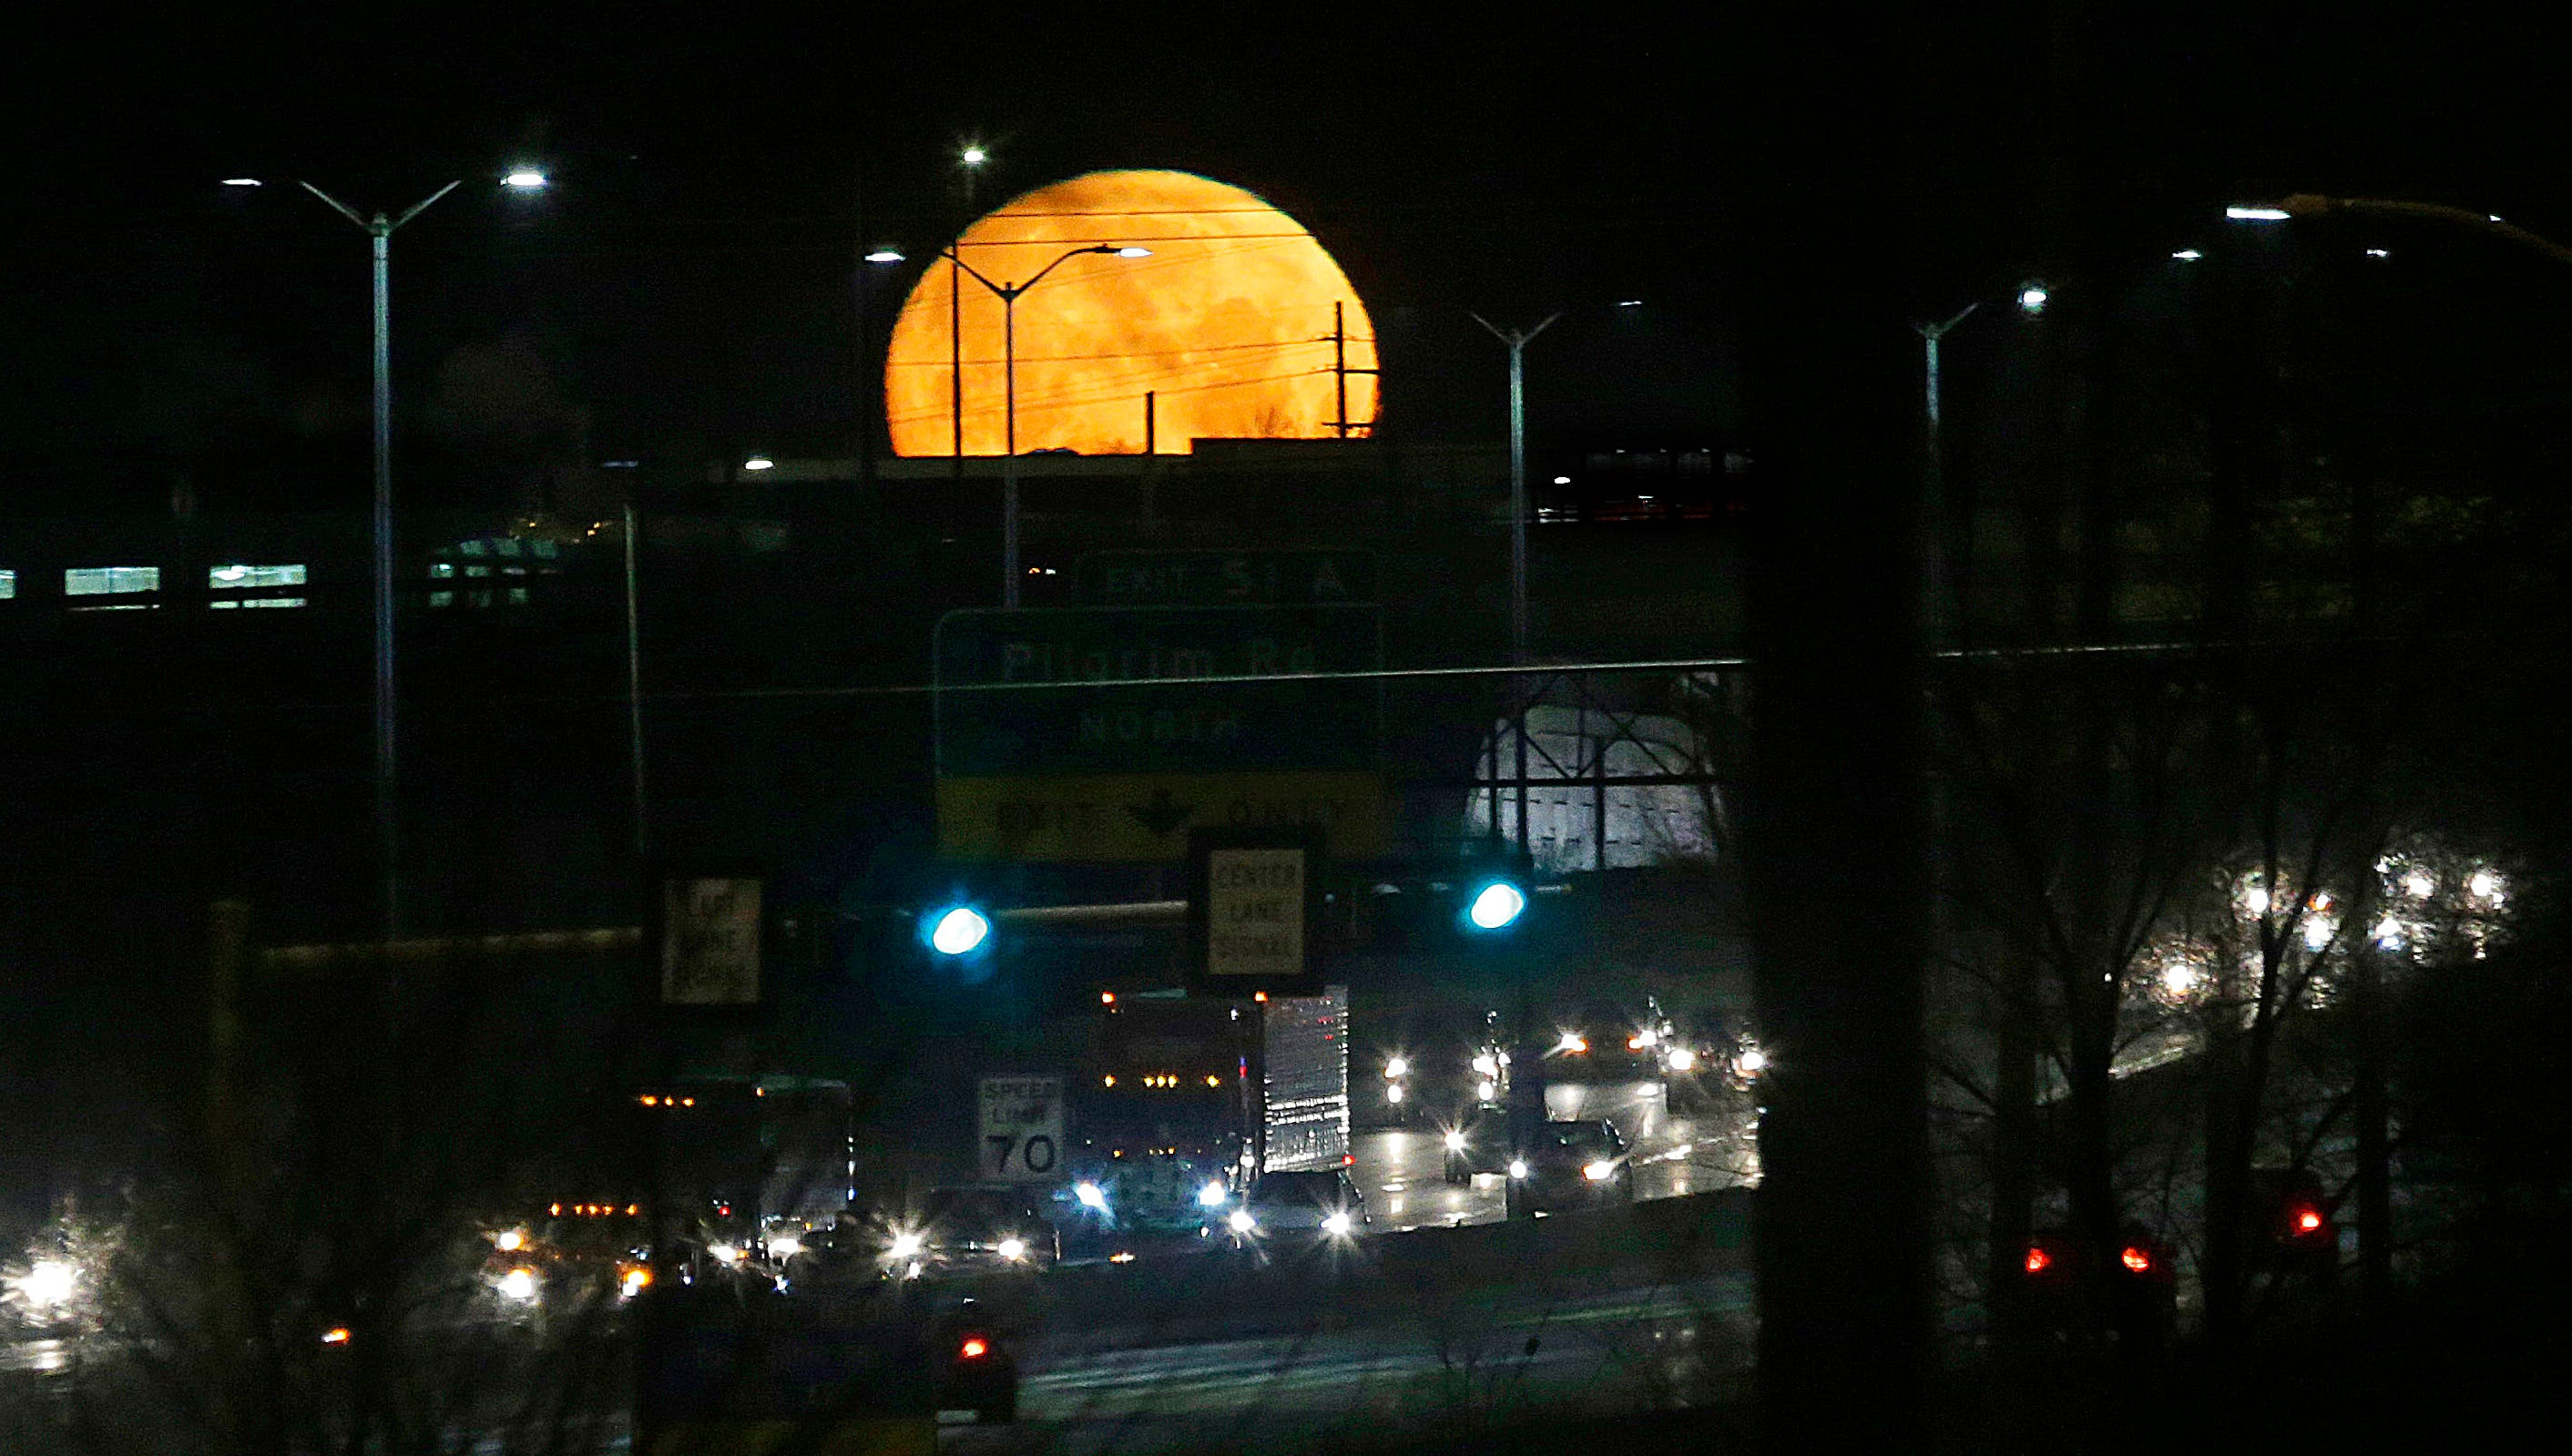 The nearly full super moon sets over State Highway 41/45 near Pilgrim Rd. In Menomonee Falls, WI on Tuesday, January 30, 2018. The actual super blood blue moon total eclipse on Wednesday could be eclipsed by clouds.   - Photo by Mike De Sisti / Milwaukee Journal Sentinel ORG XMIT: MJS1801300755080002